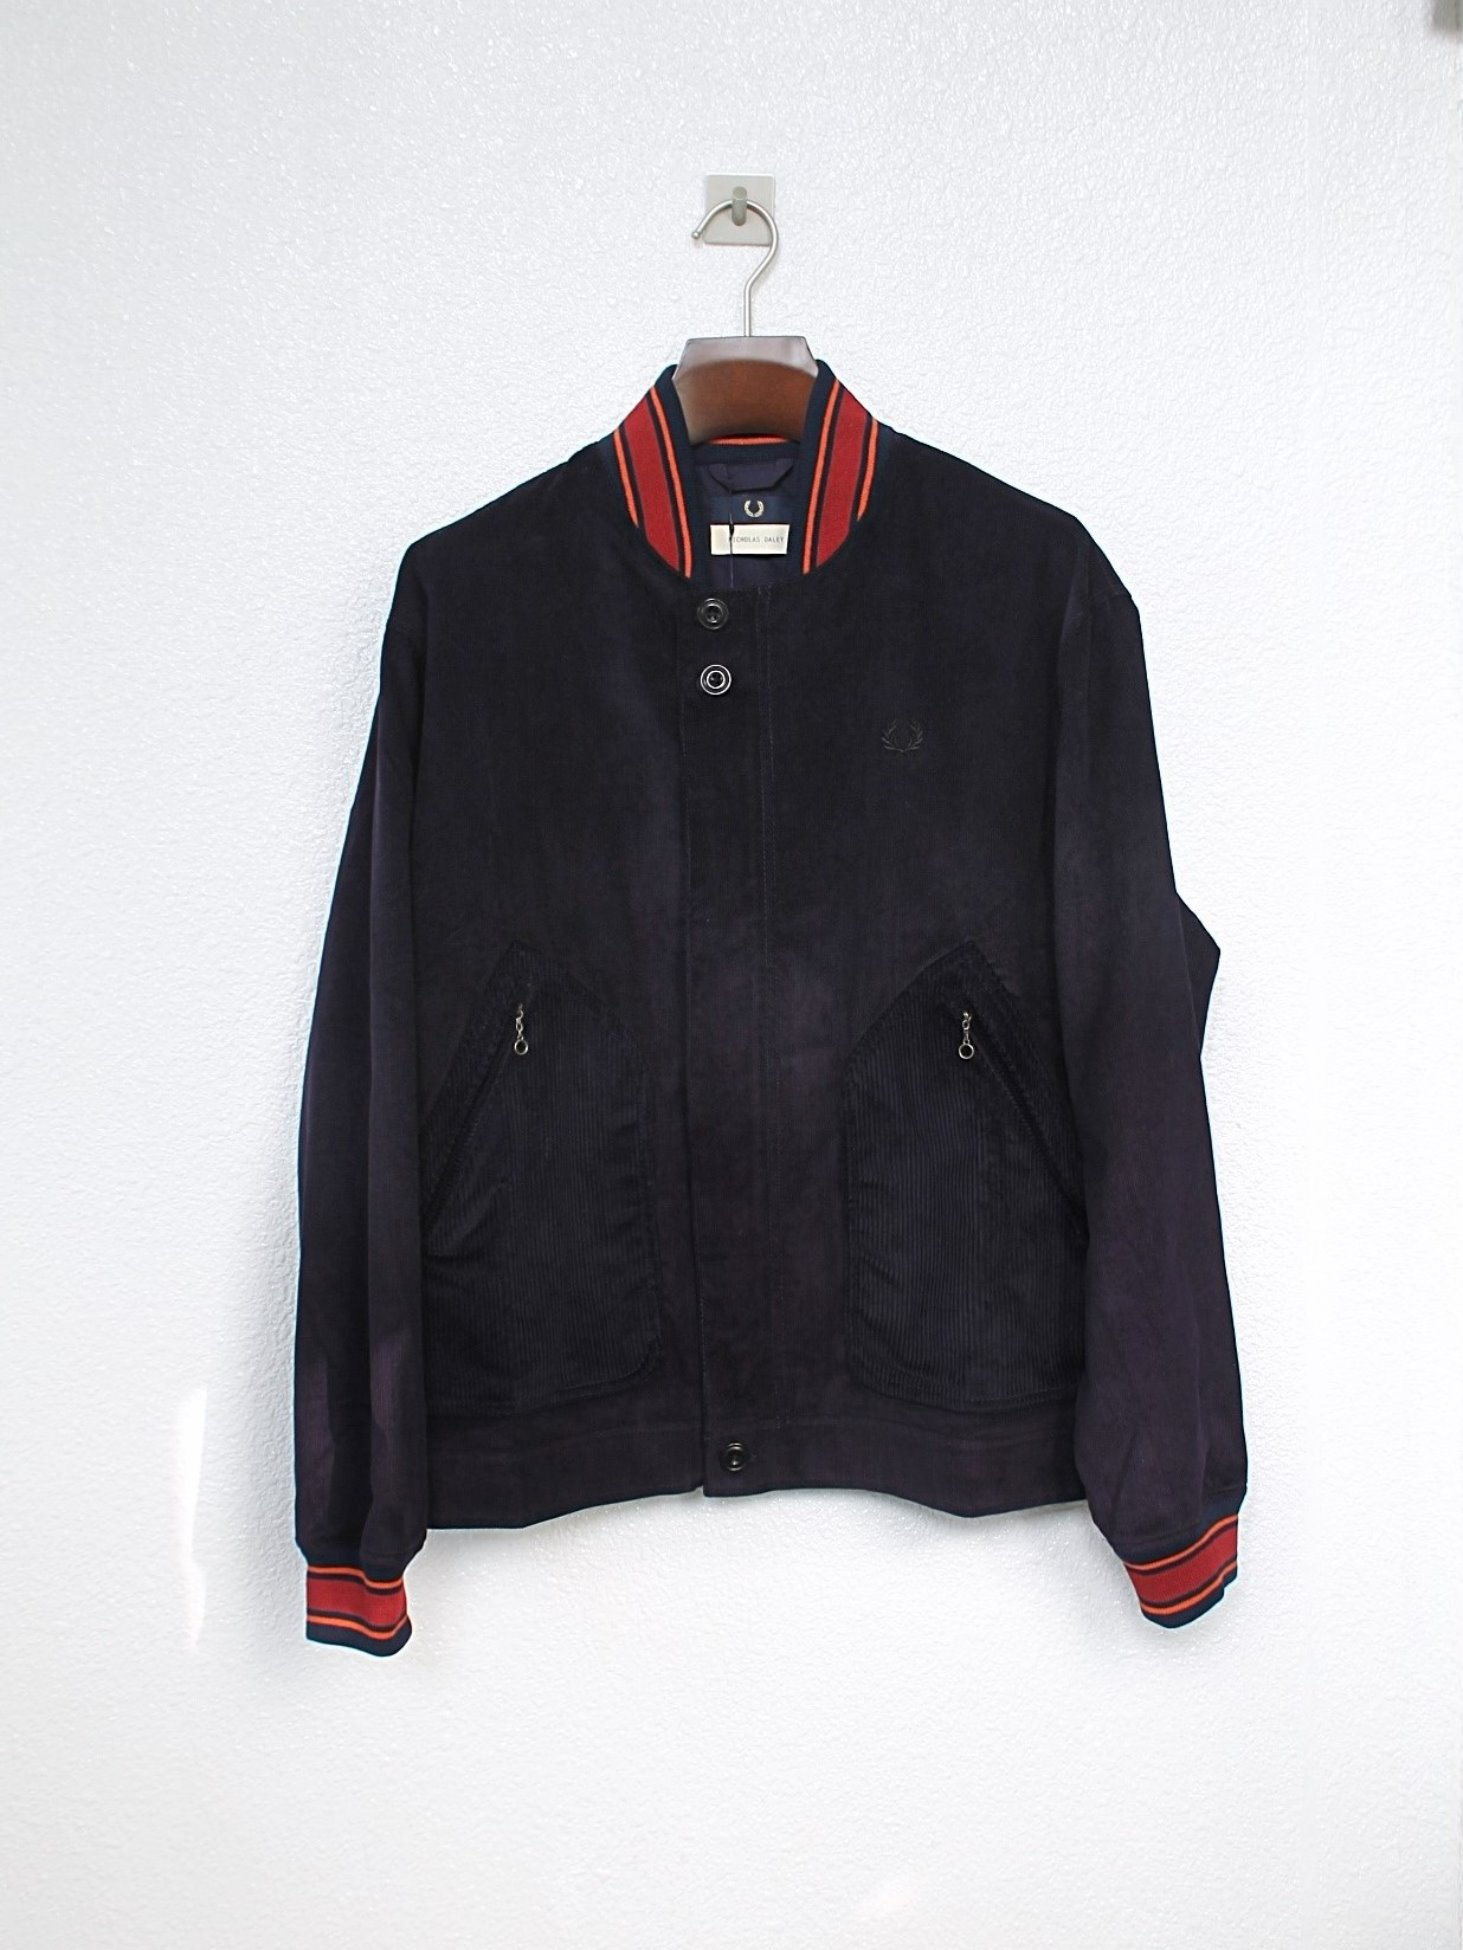 [FRED PERRY X NICHOLAS DALEY] Corduroy Bomber Jacket - Carbon Blue